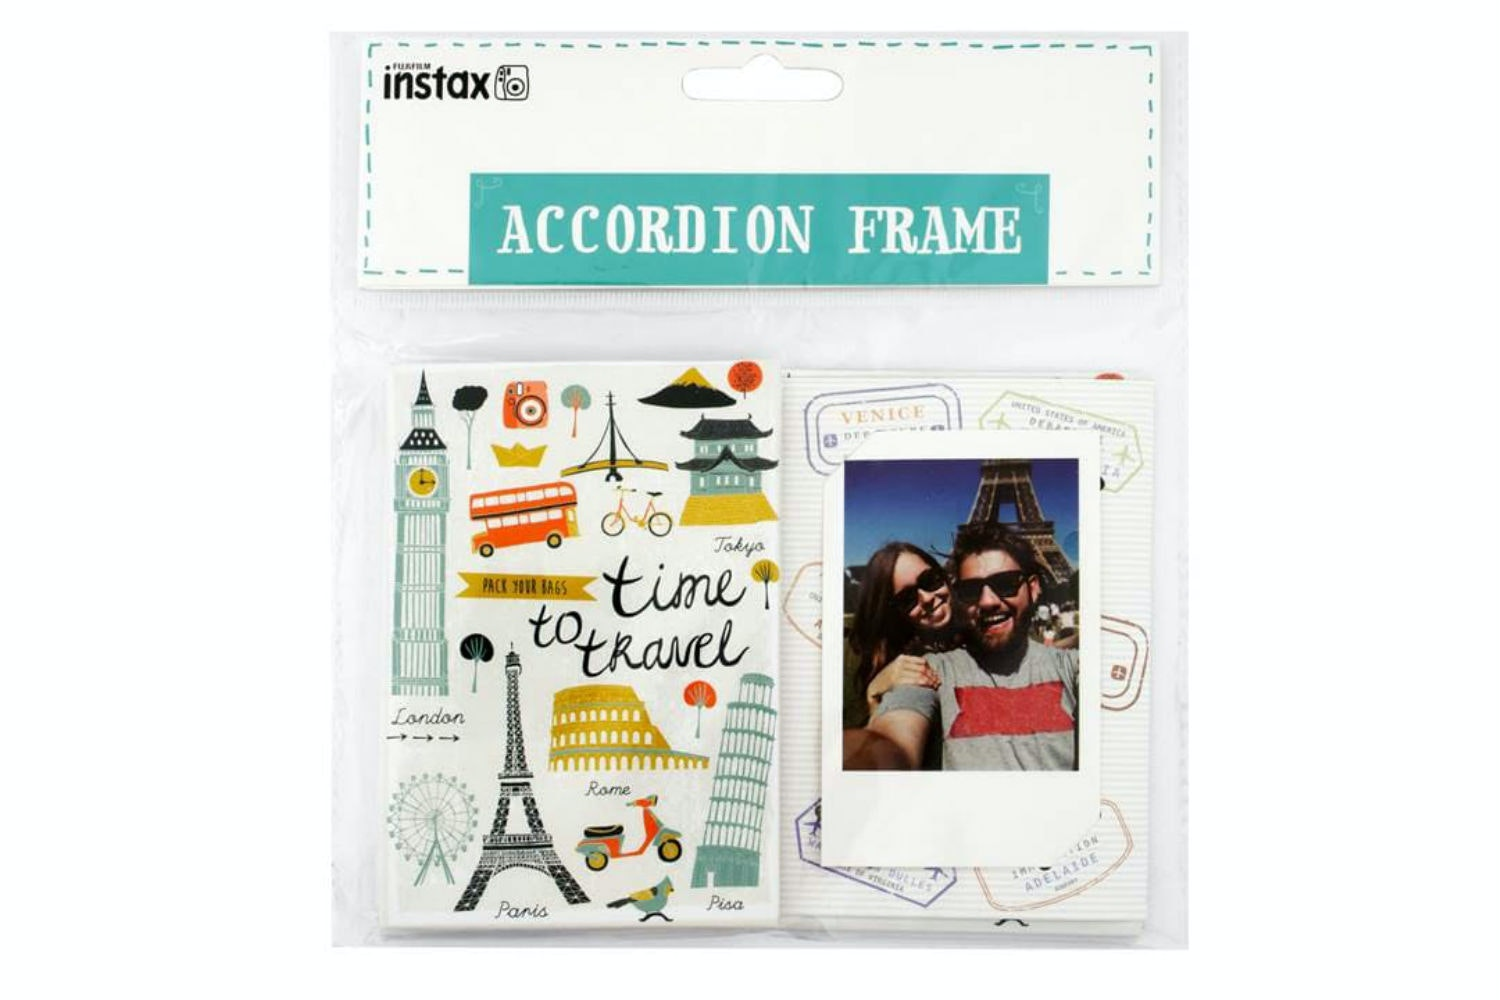 Instax Accordion Frame | Travel